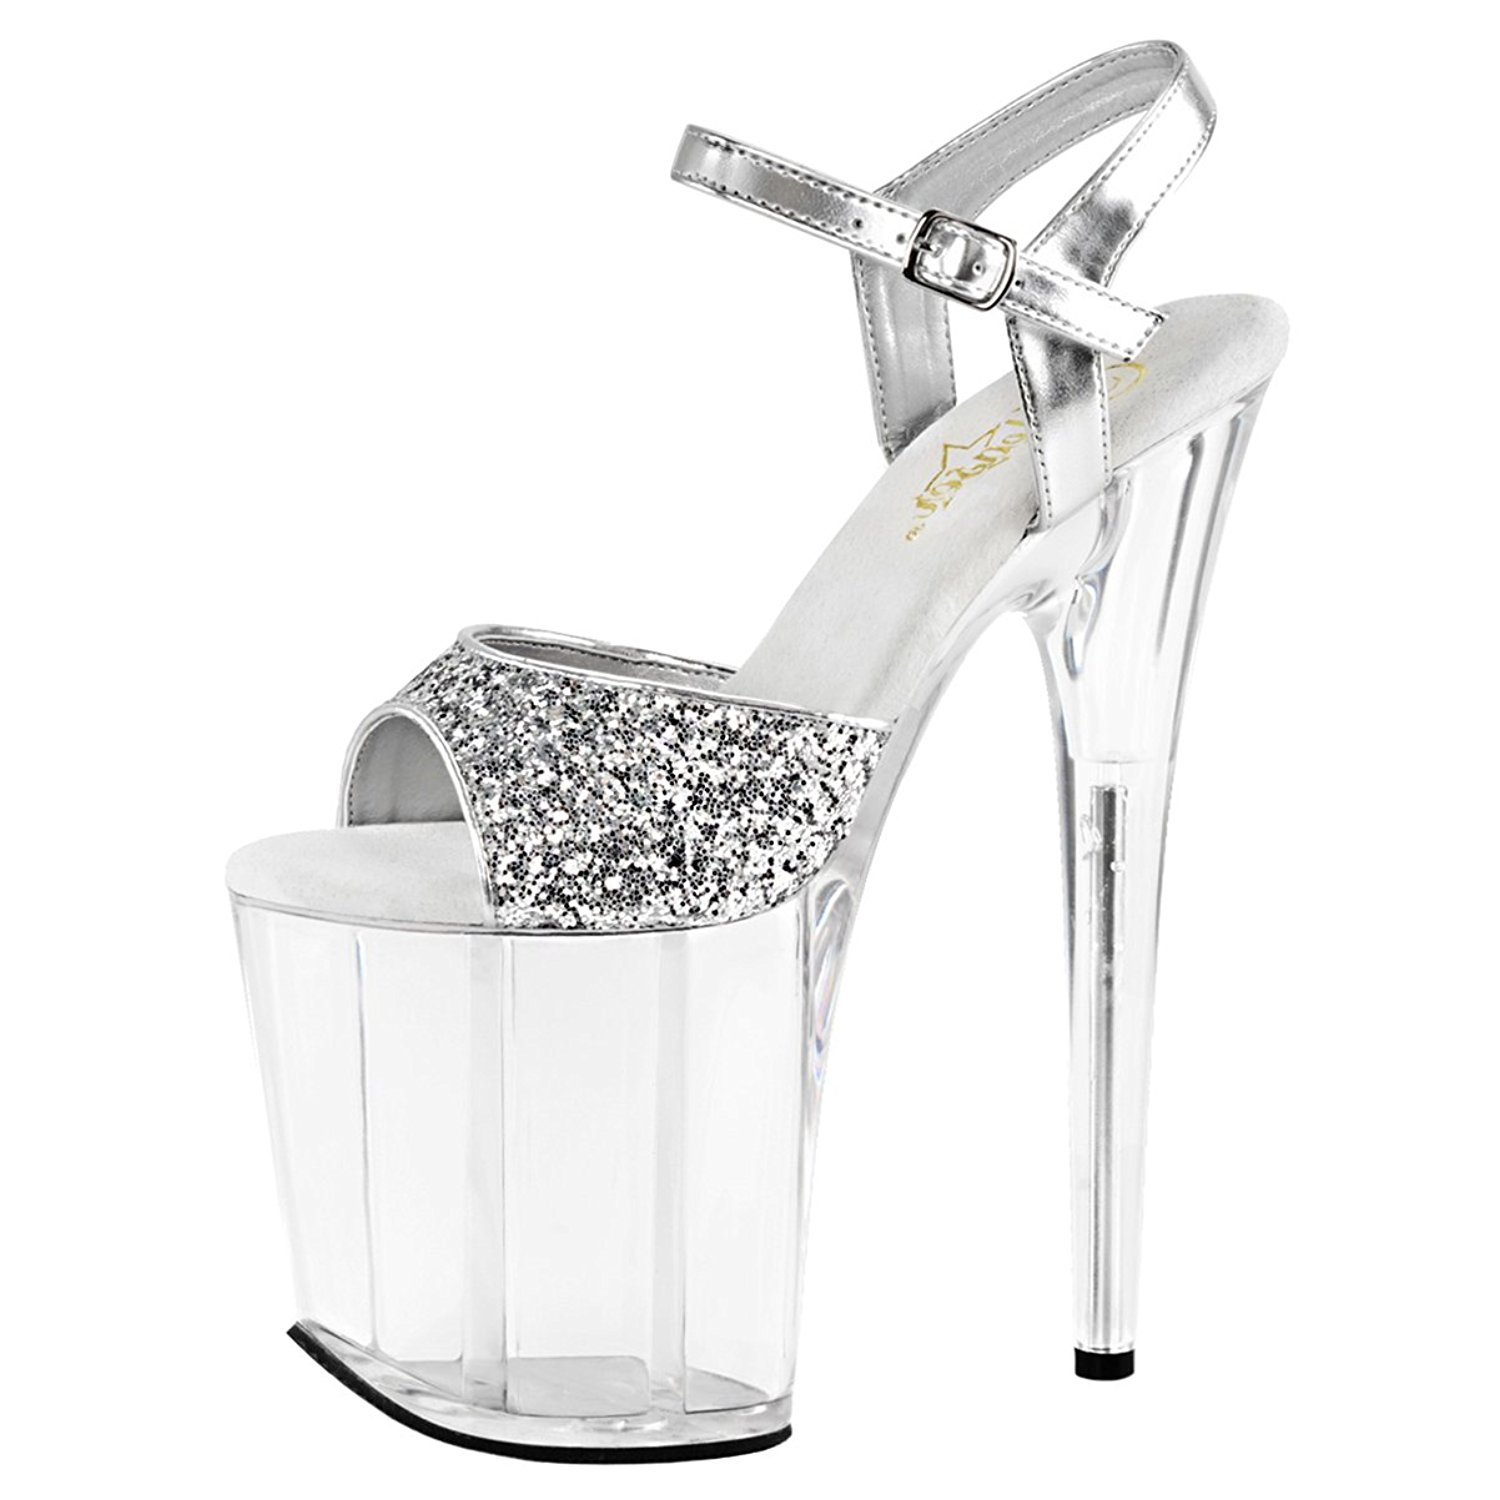 fd32a6d83b3 Get Quotations · Summitfashions Womens Platform High Heels Silver Glitter  Sandals Clear Shoes 8 Inch Heels